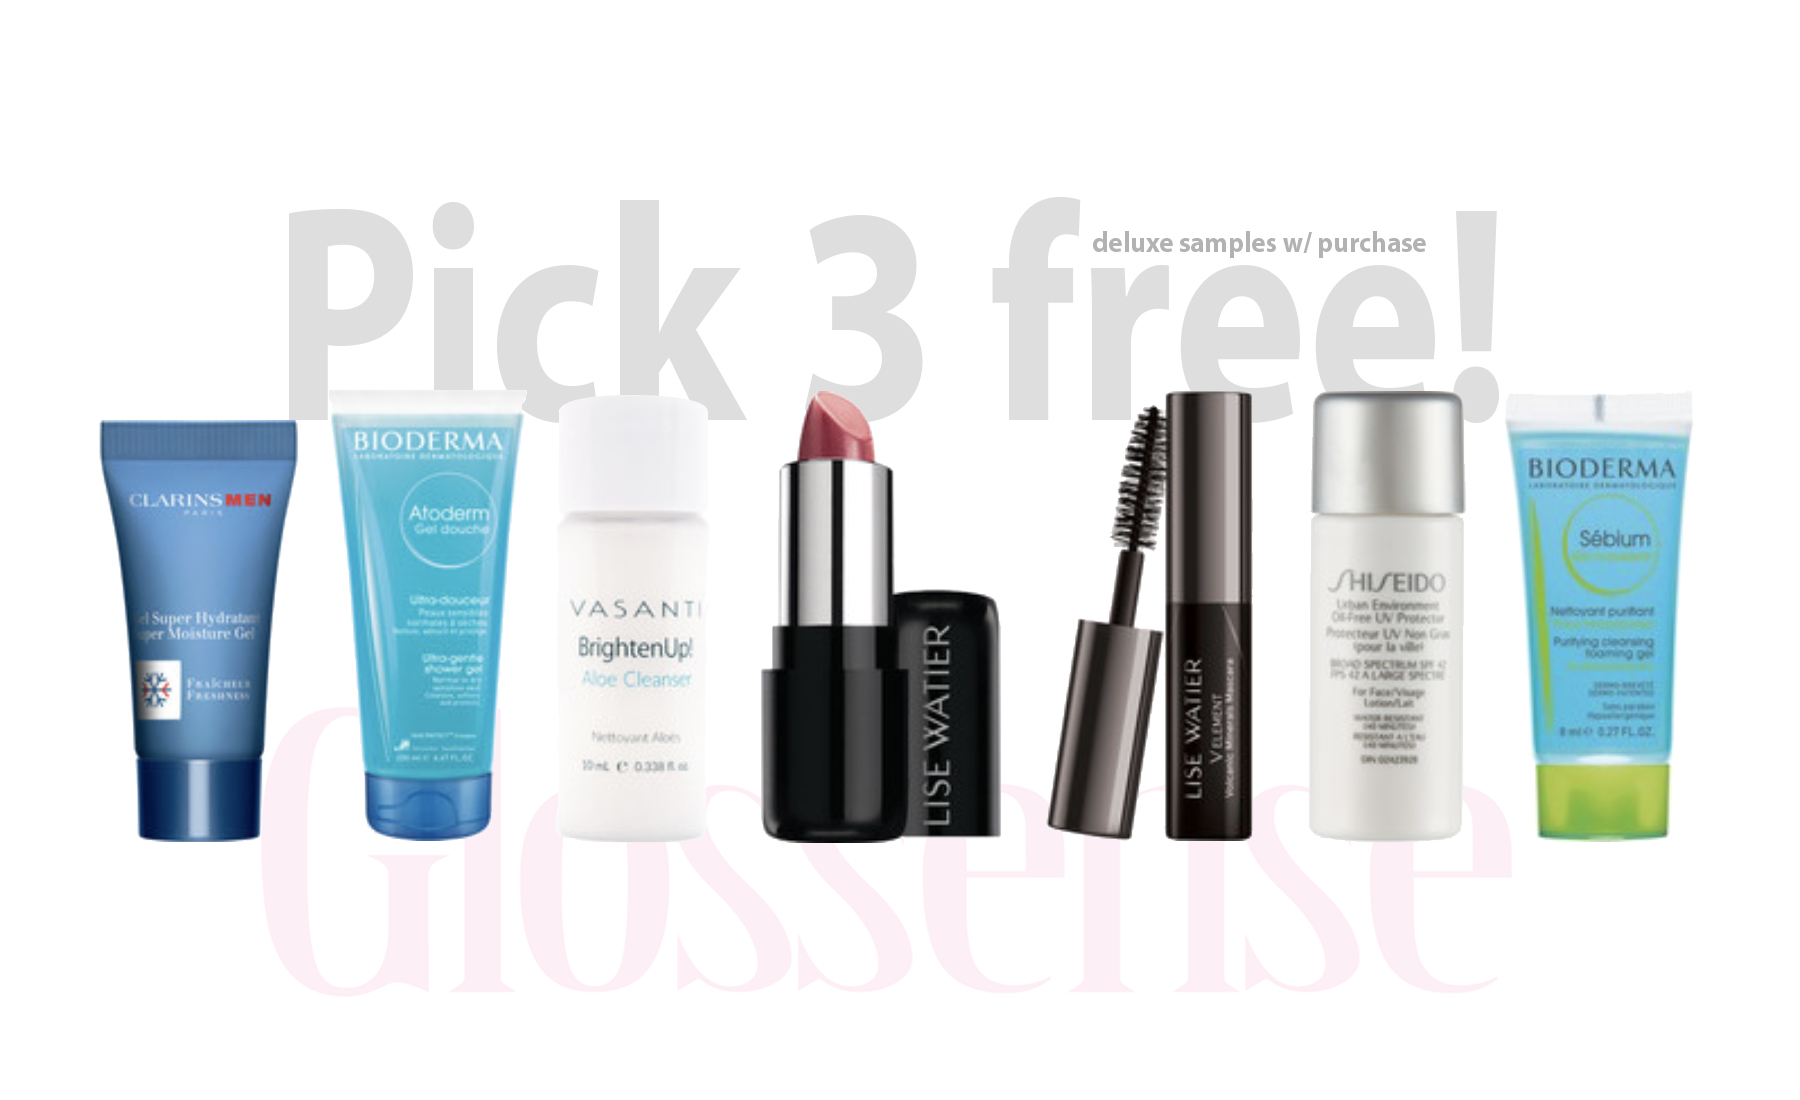 Beauty By Shoppers Drug Mart Canada Hot Canadian Samples Choose 3 Free W Purchase November 3 2020 Deals